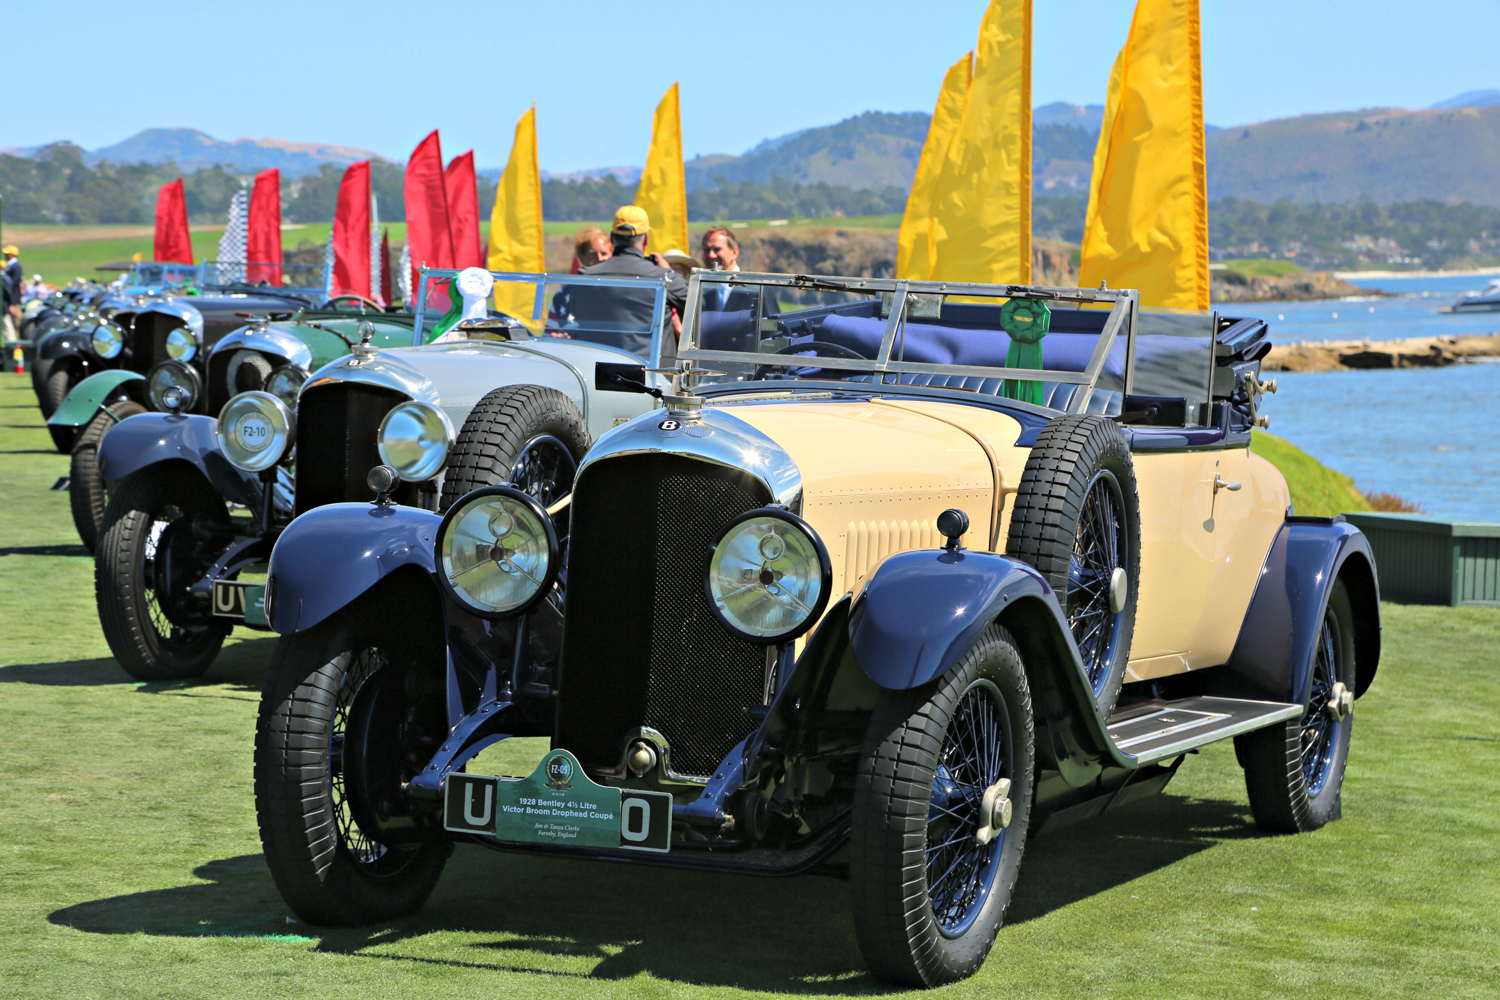 A 1928 Bentley 4 1/4 Litre Victor Broom Crophead Coupe owned by Jim & Tanya Clarke leads an impressive line of Bentley automobiles to celebrate the 100th anniversary of the marque.